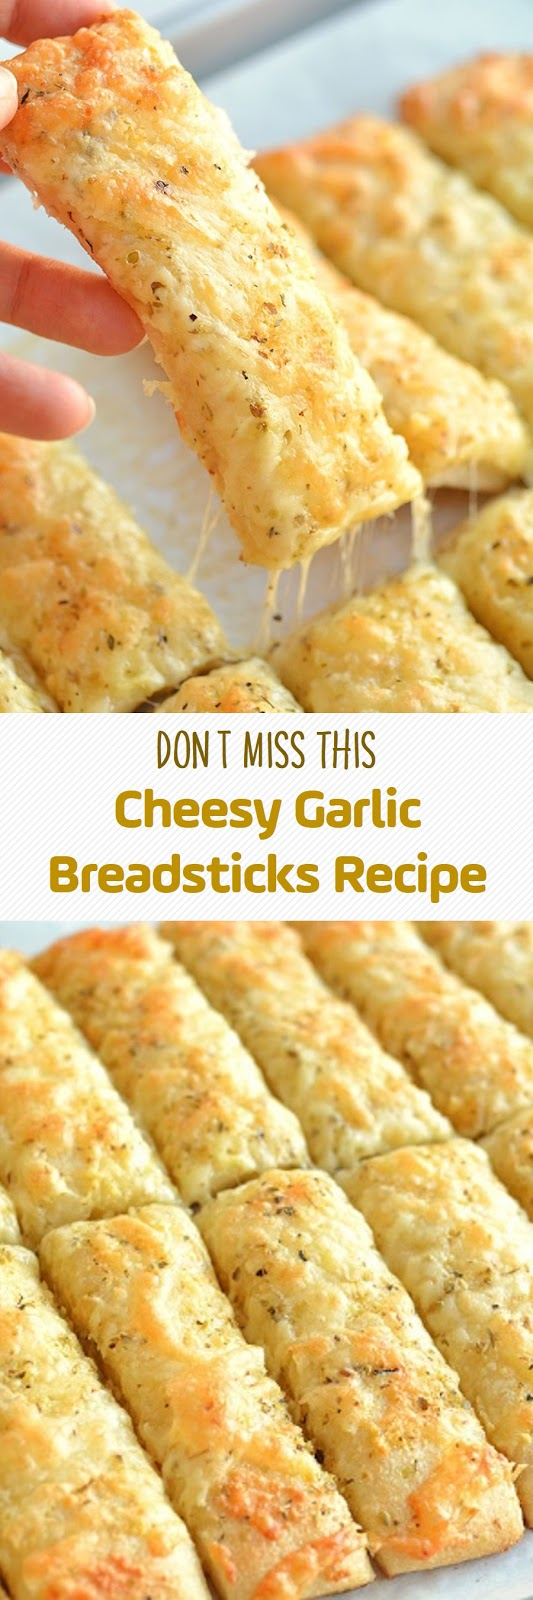 Don't Miss This Cheesy Garlic Breadsticks Recipe